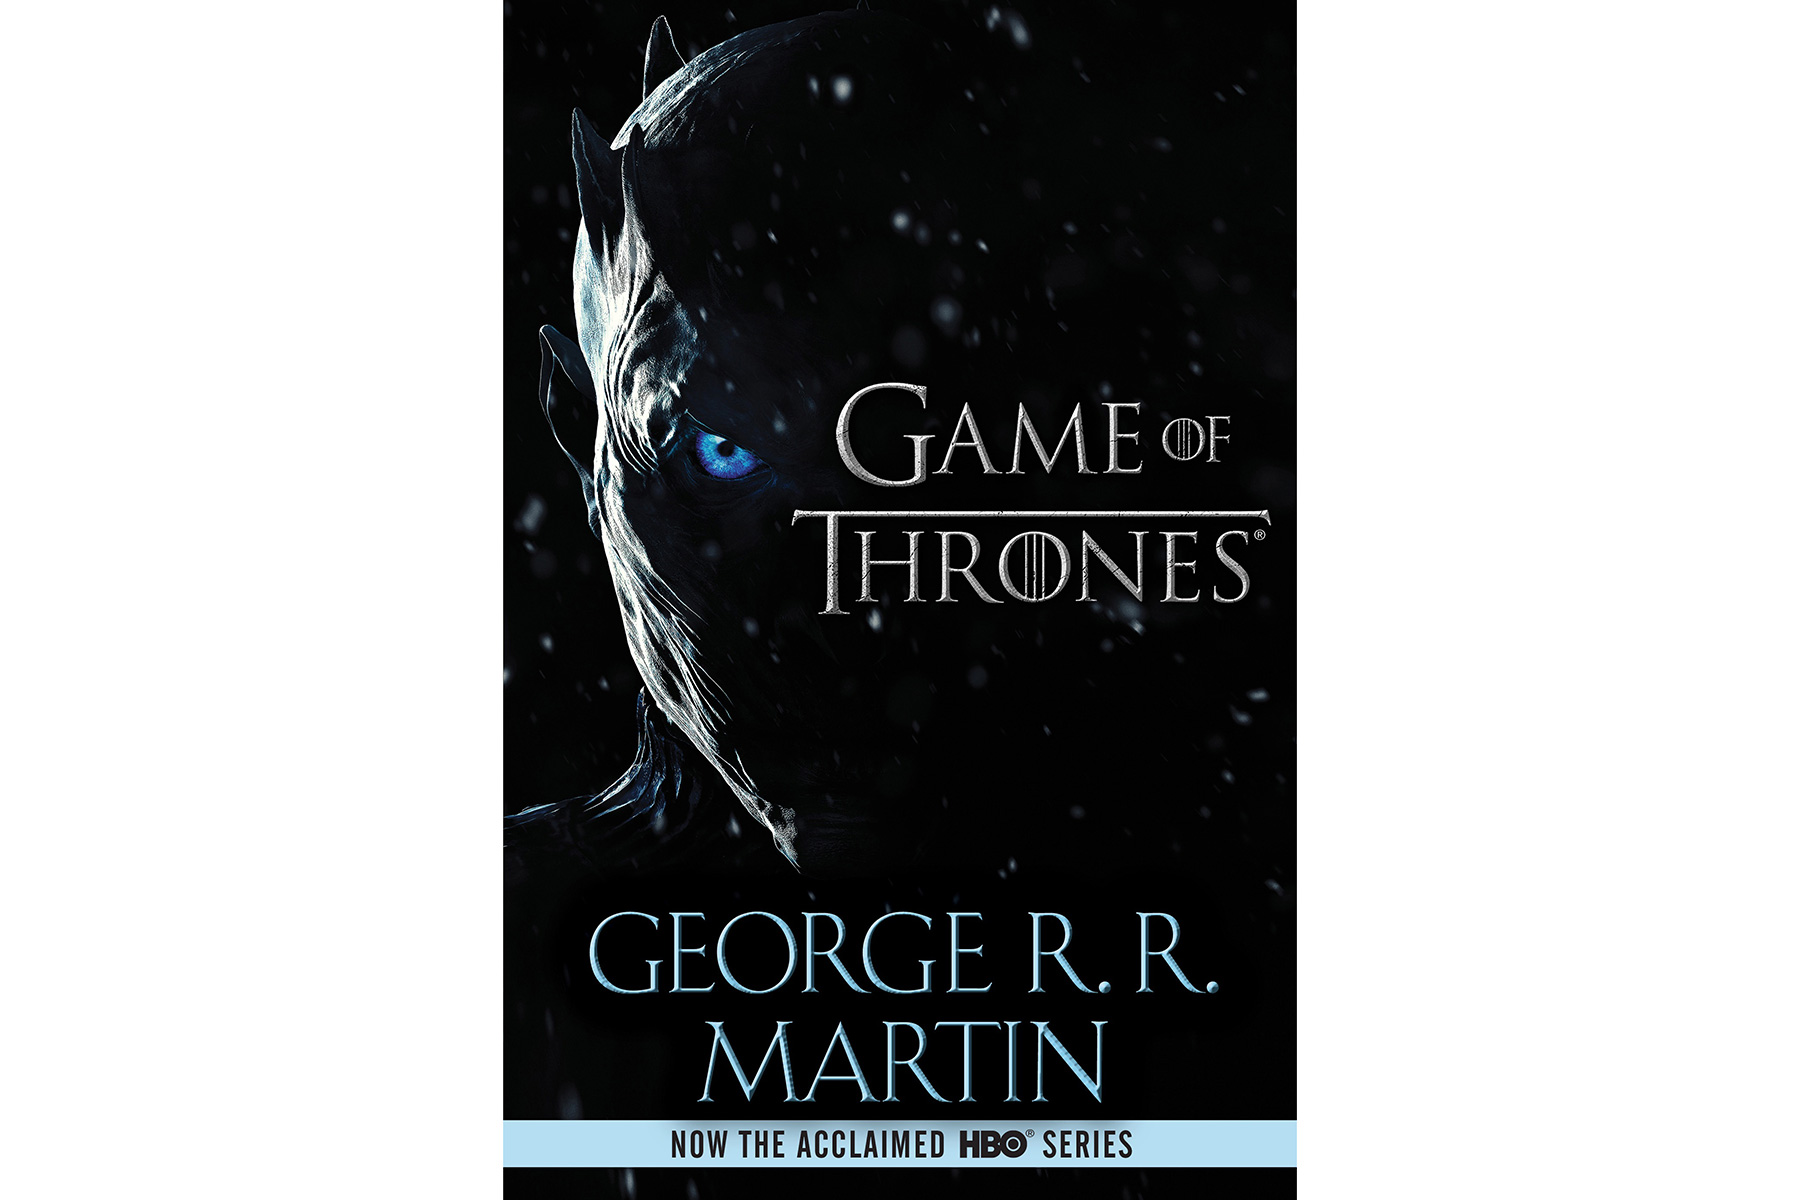 A Game of Thrones, by George R. R. Martin